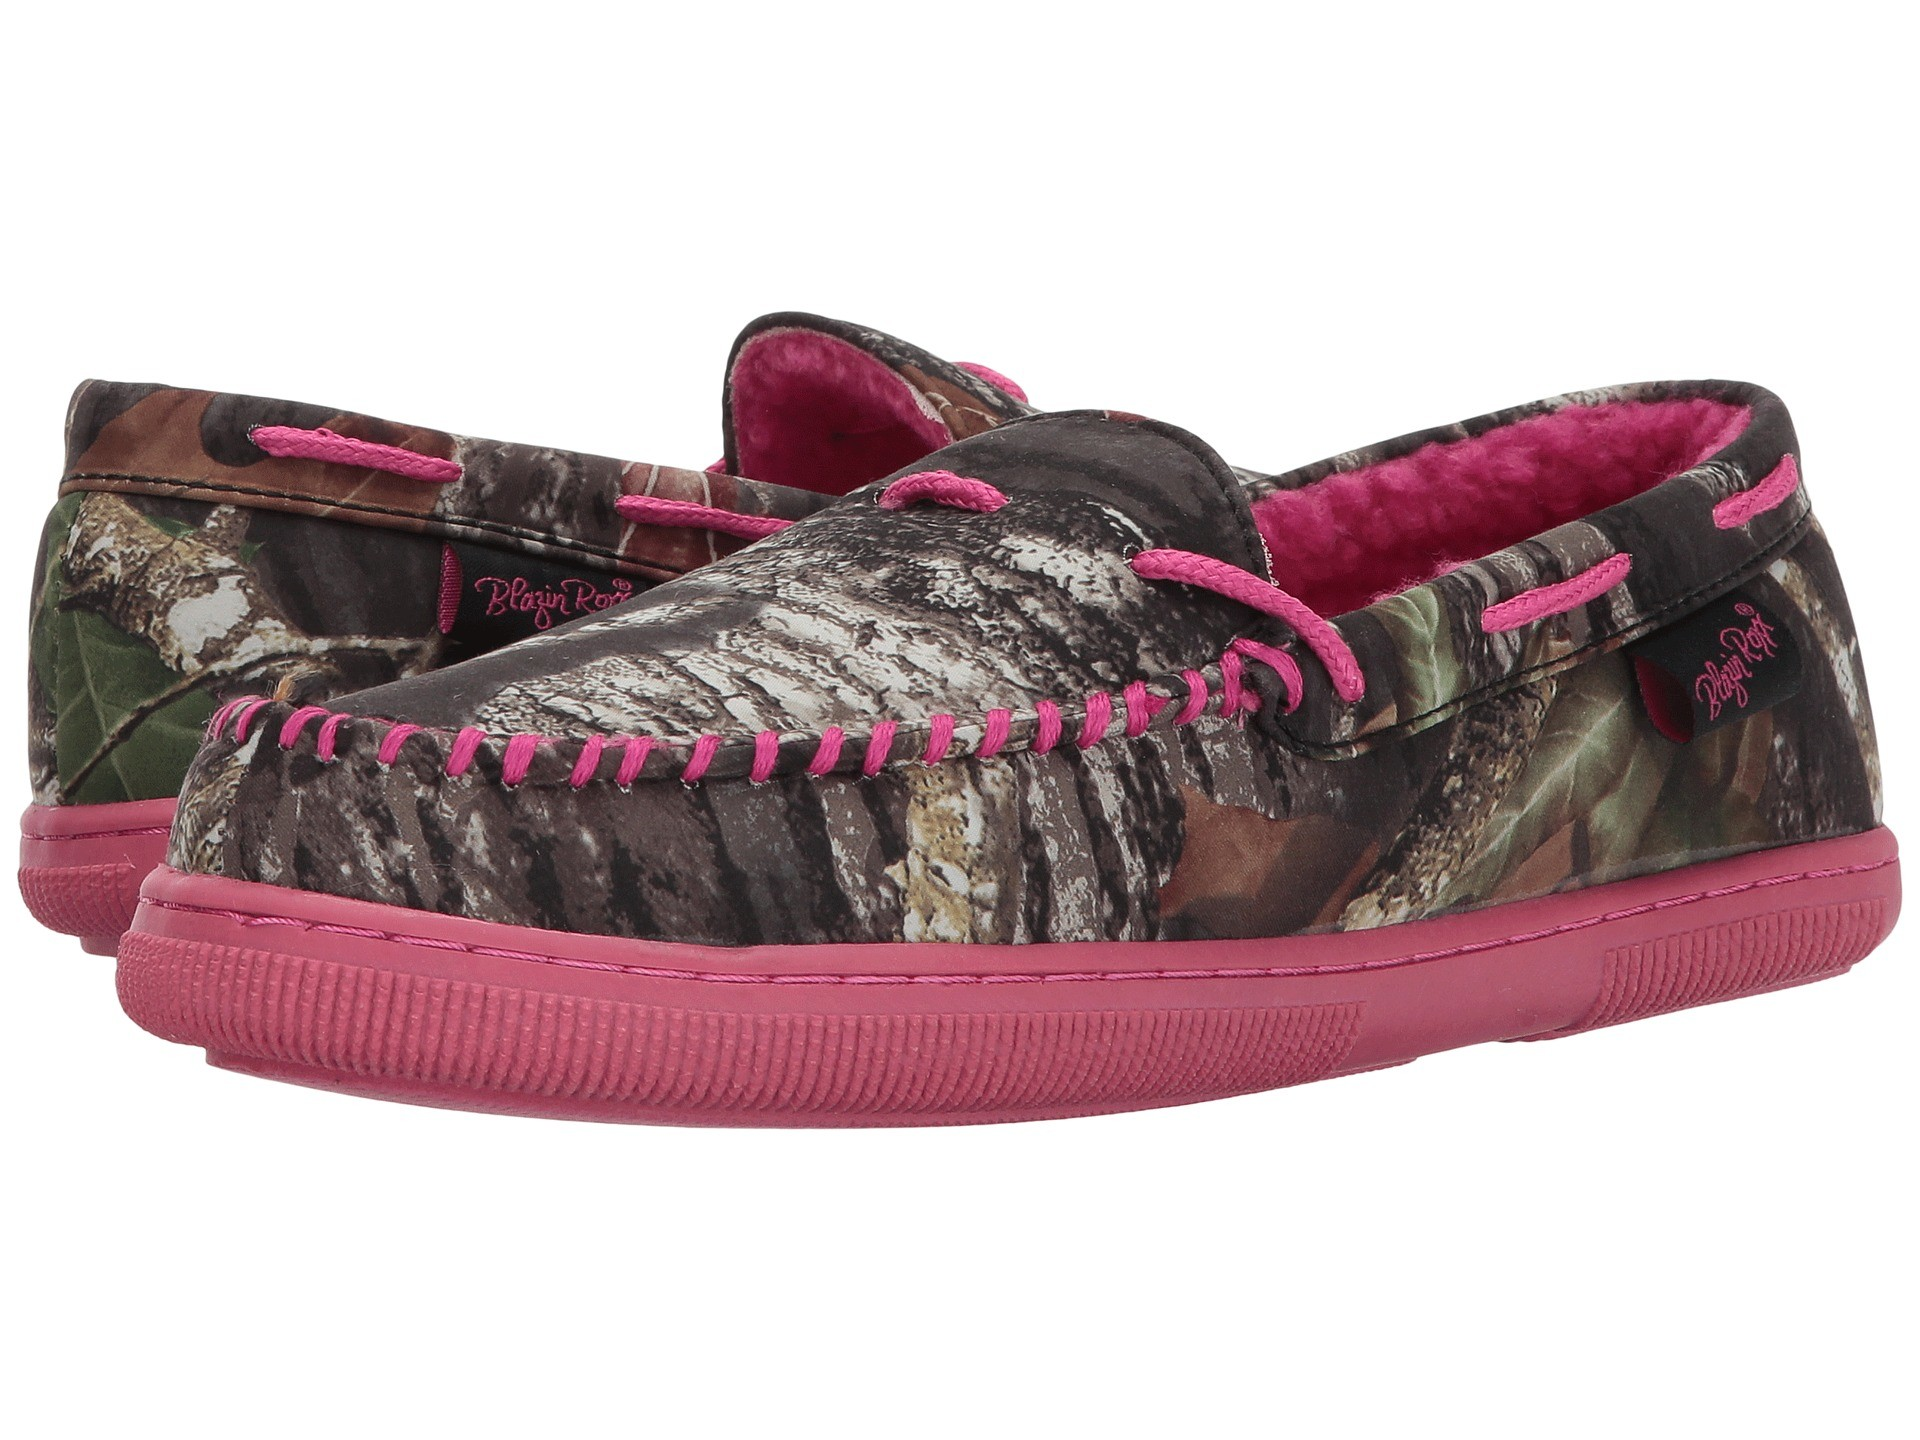 1920x1440 Cheap women shoes M&F Western Mossy Oak Moccasin Slippers Hot Pink Mossy Oak  Camo Fashion Authentic